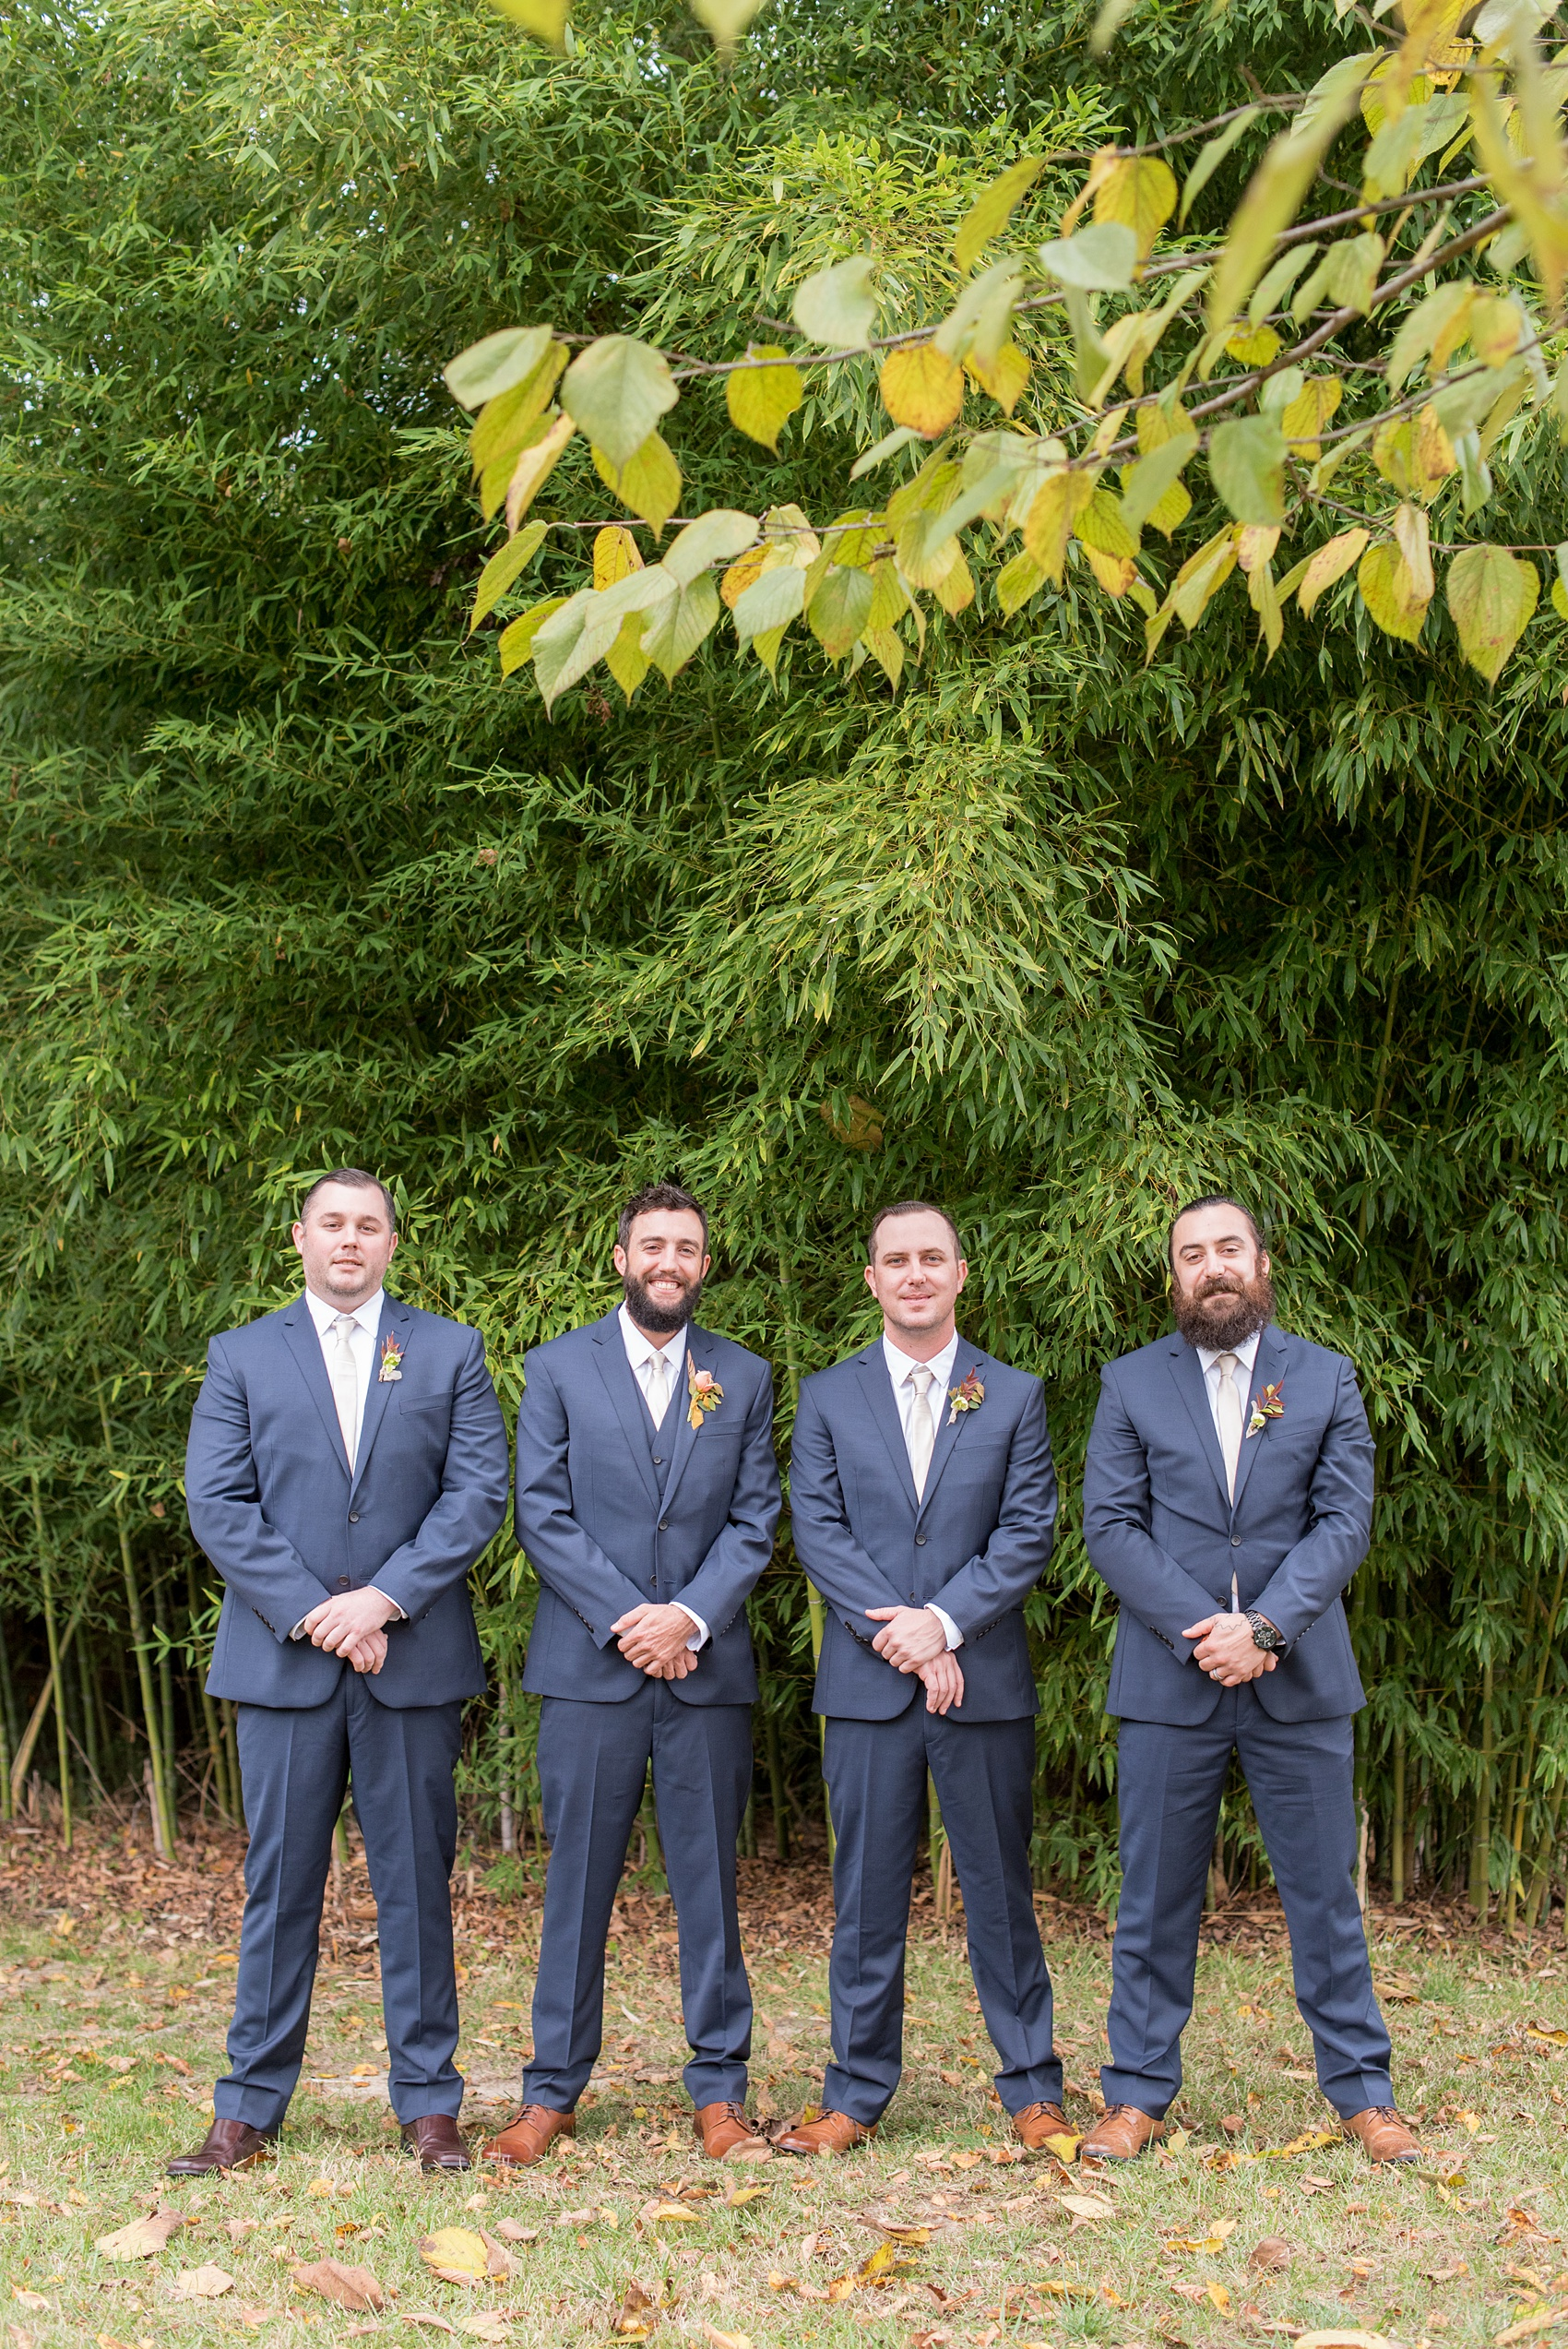 Mikkel Paige Photography photos from a wedding at Leslie-Alford Mims House in North Carolina. Picture of the groomsmen in navy blue linen suits for a fall Mad Dash Weddings event.